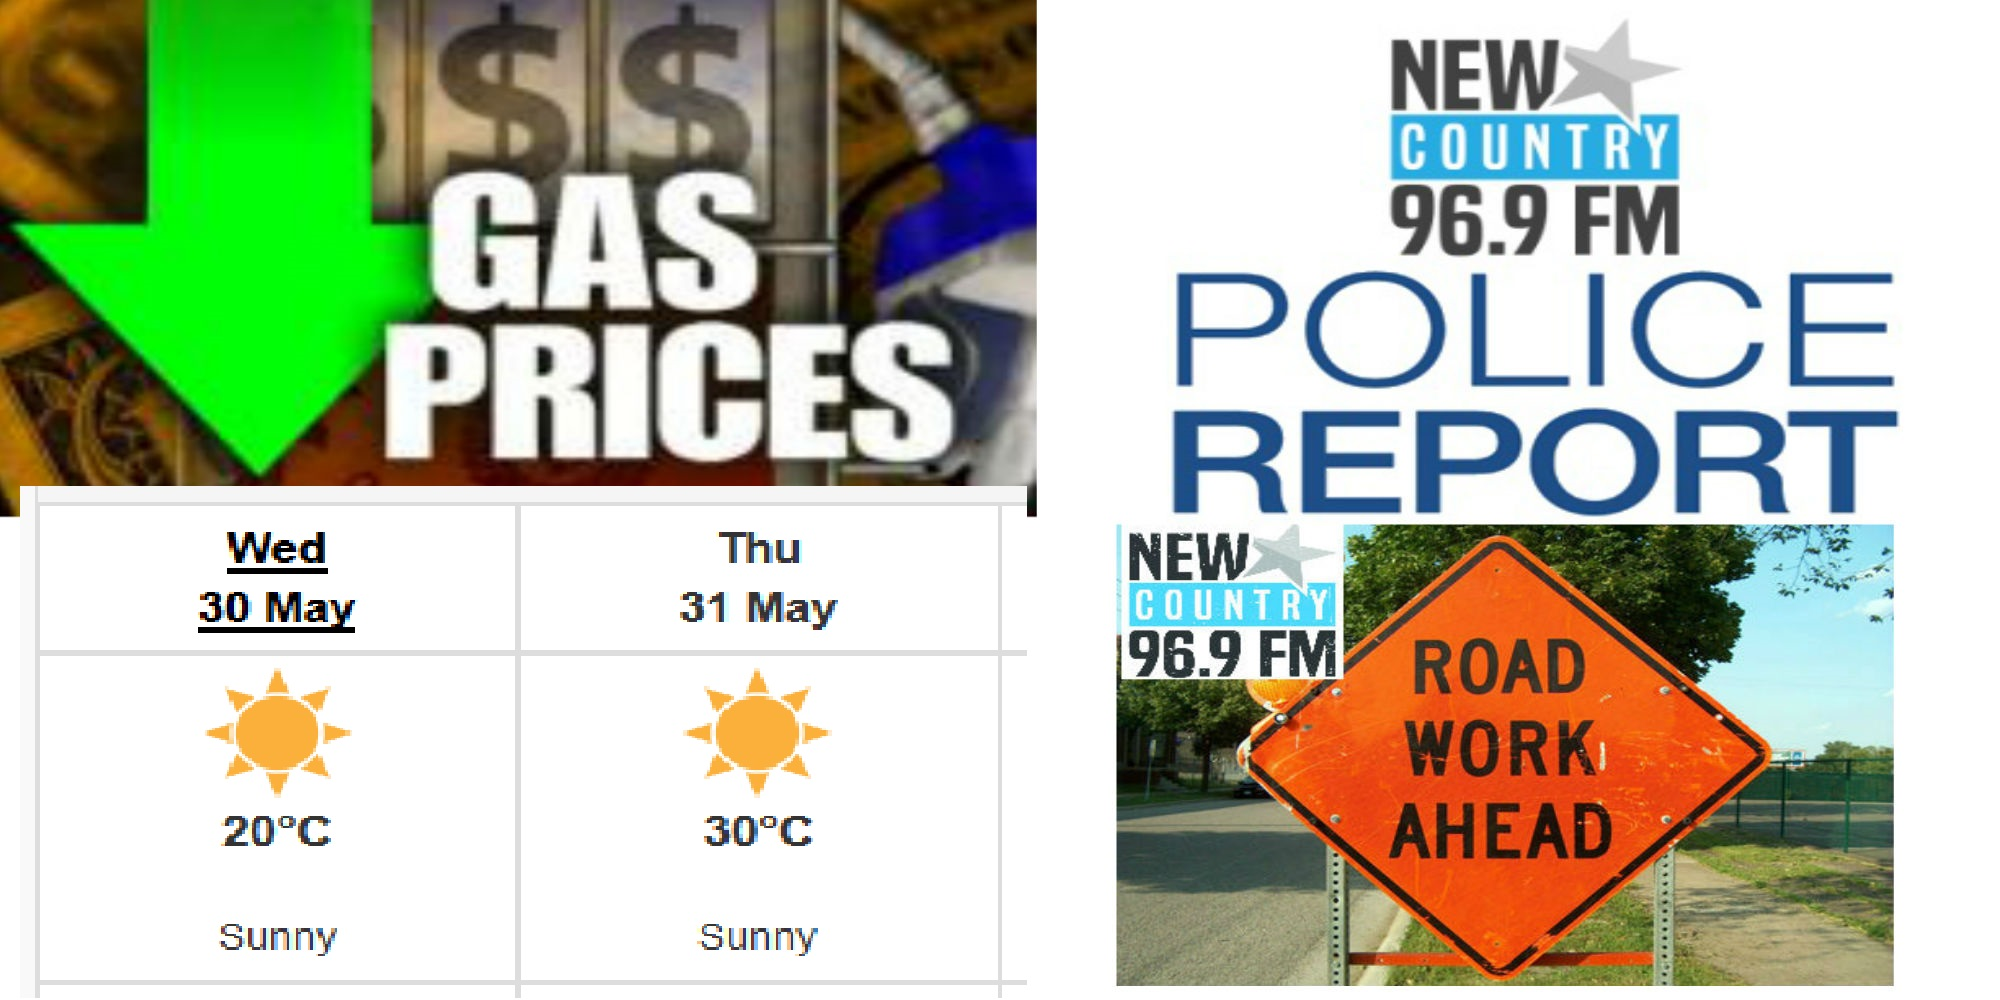 #WhatsTrending - Wednesday, May 30th - Sunny & 20 today...sunny and 30 tomorrow! / Gas prices DROPPING? / Police in Northern NB hand out 138 tickets in TWO DAYS! / Moncton Traffic: Work on Connaught Ave today / Stanley Cup Finals game #2 tonight